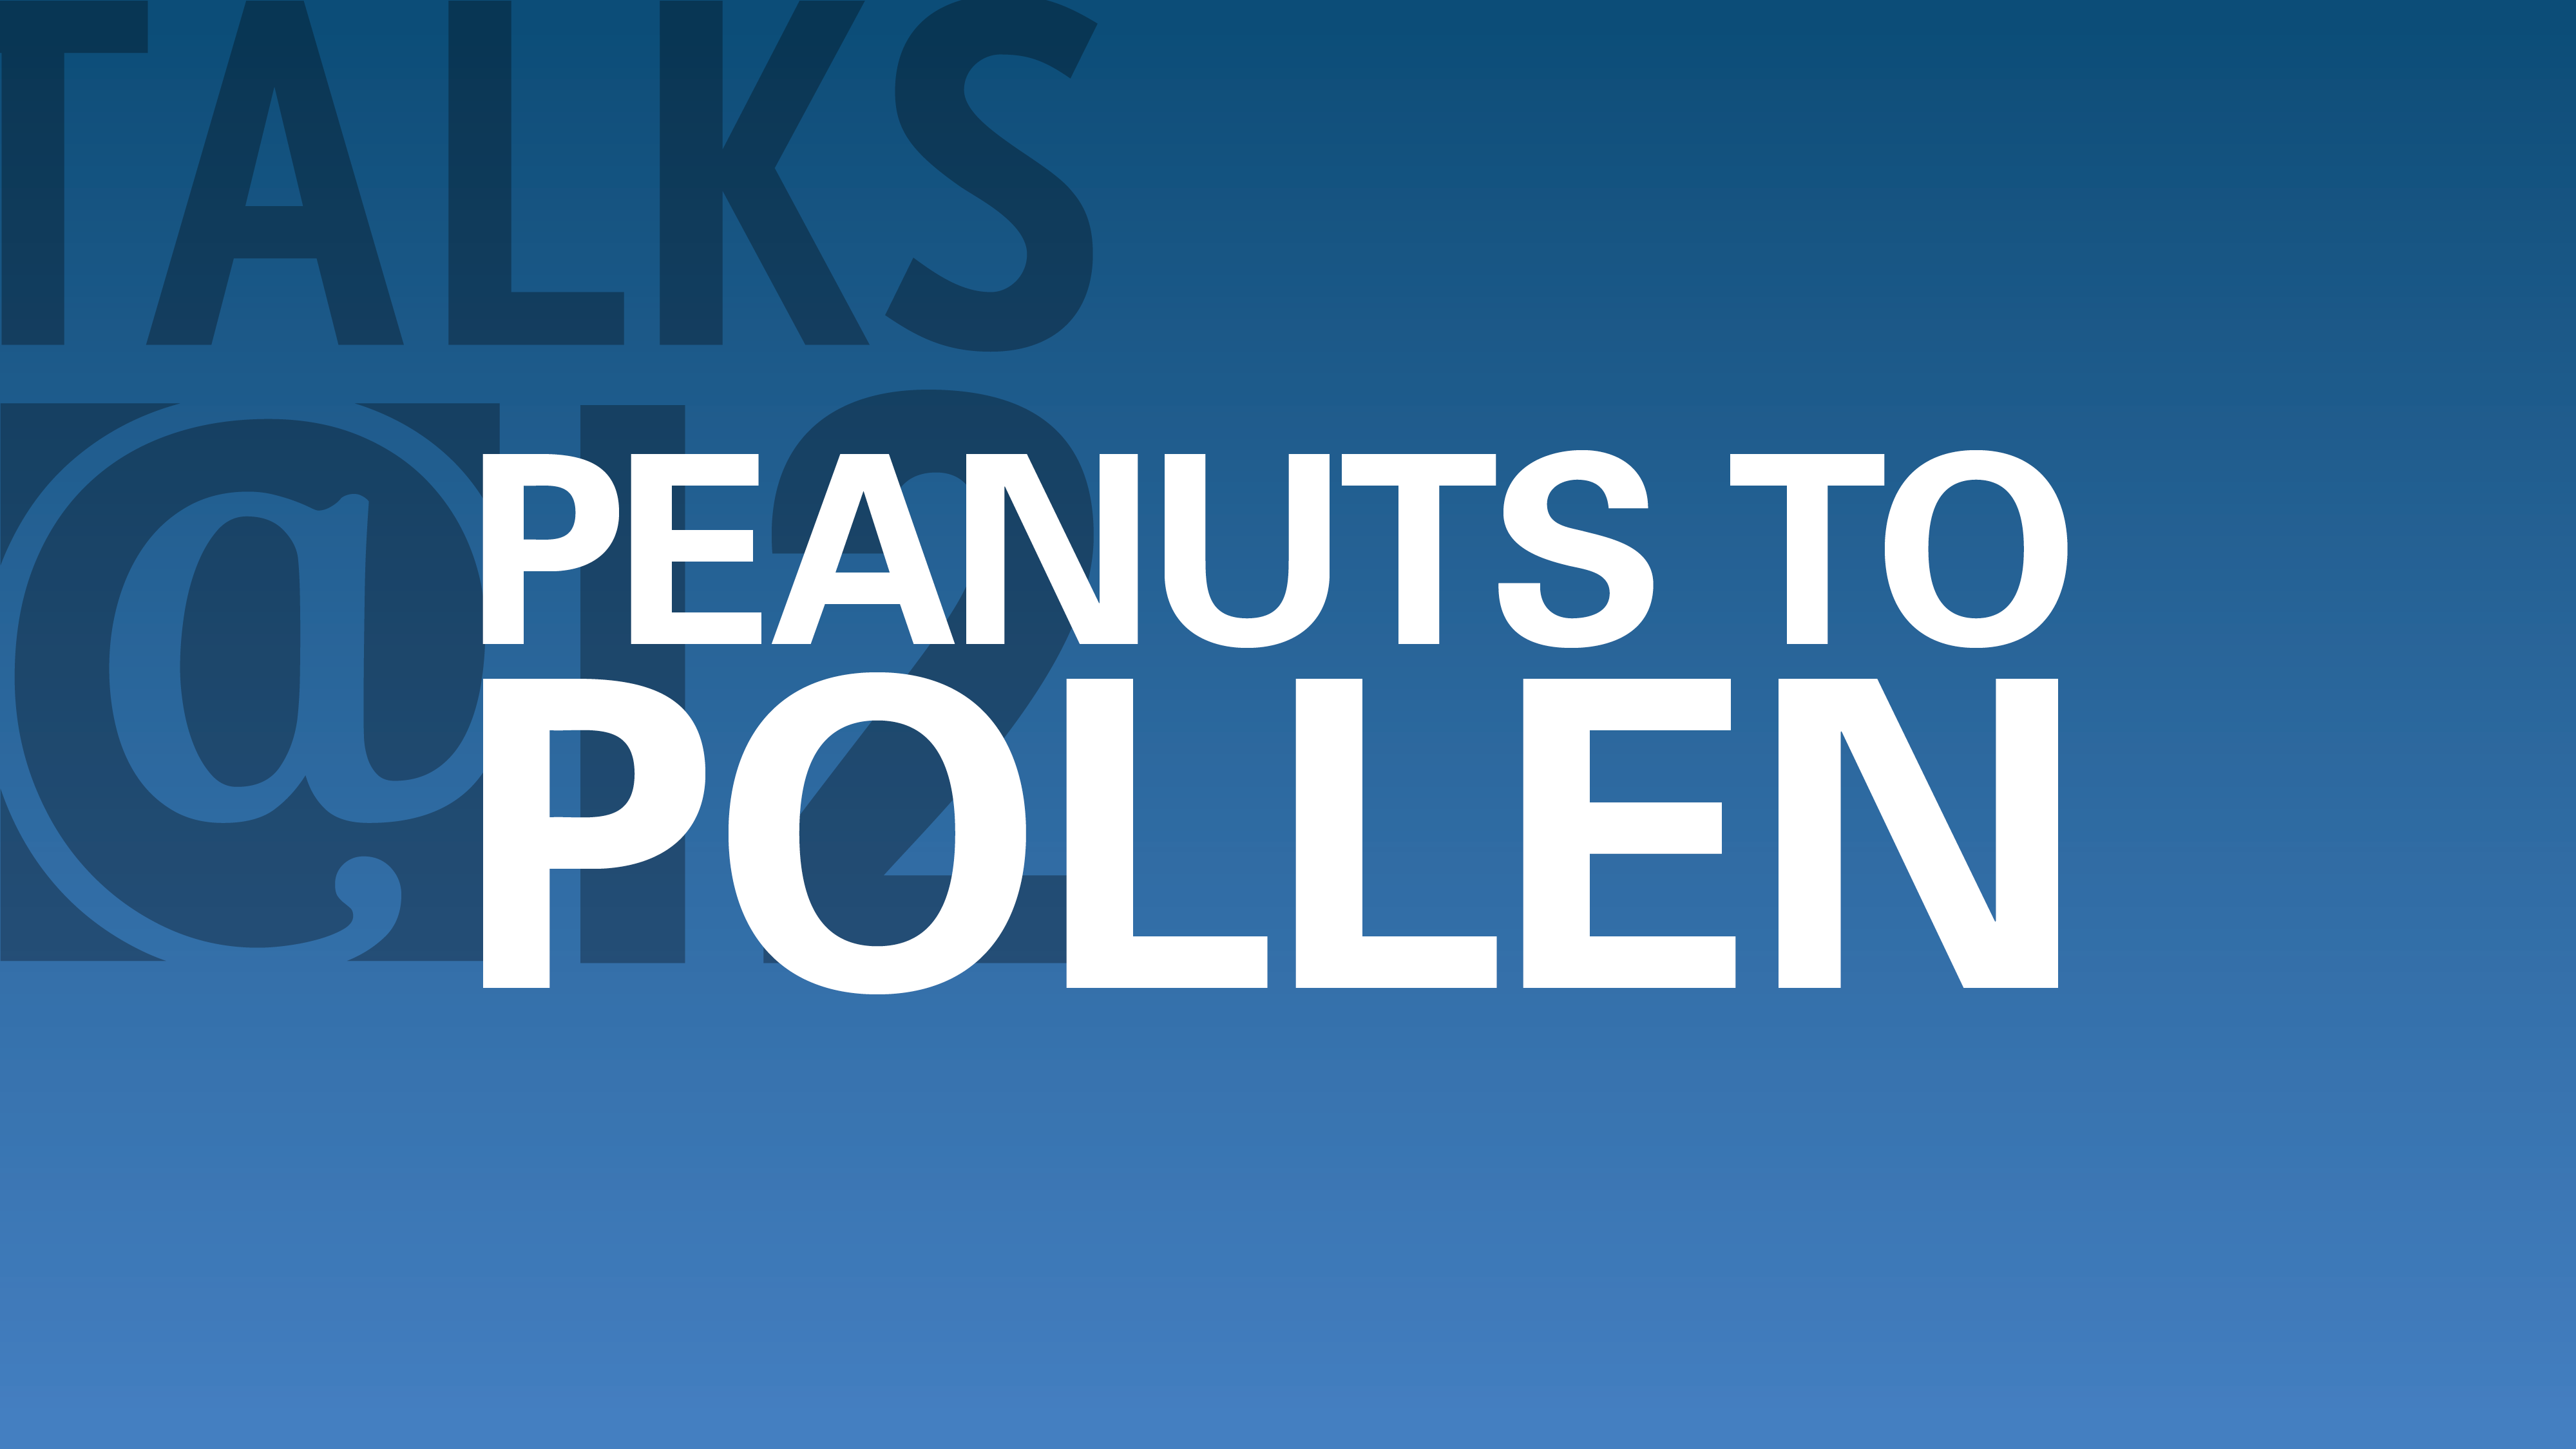 Peanuts to Pollen